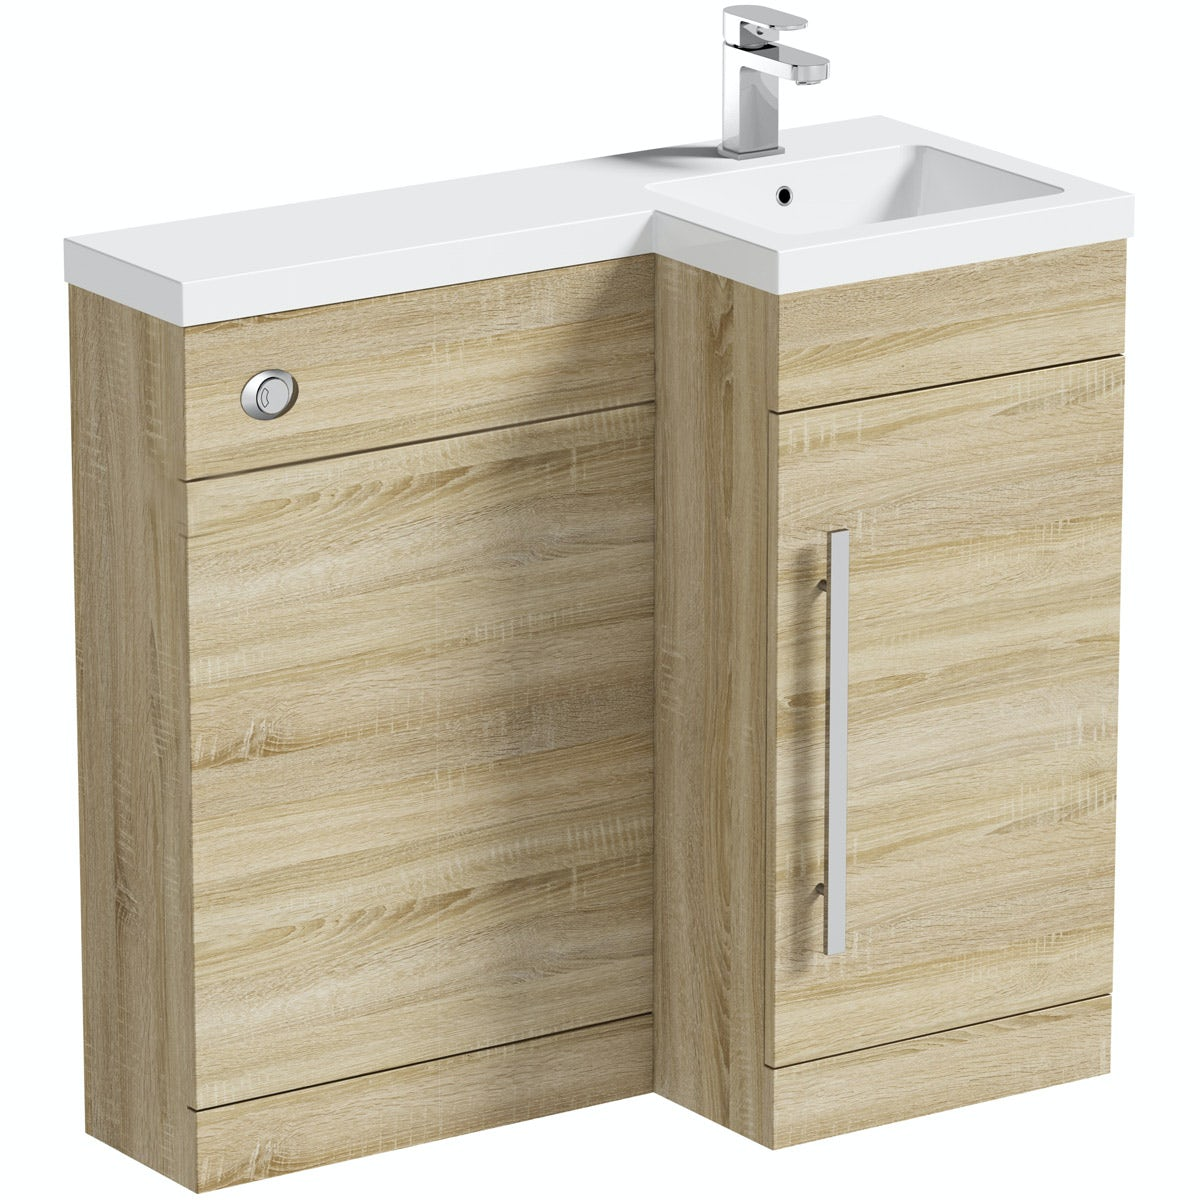 Orchard MySpace oak right handed unit including concealed cistern